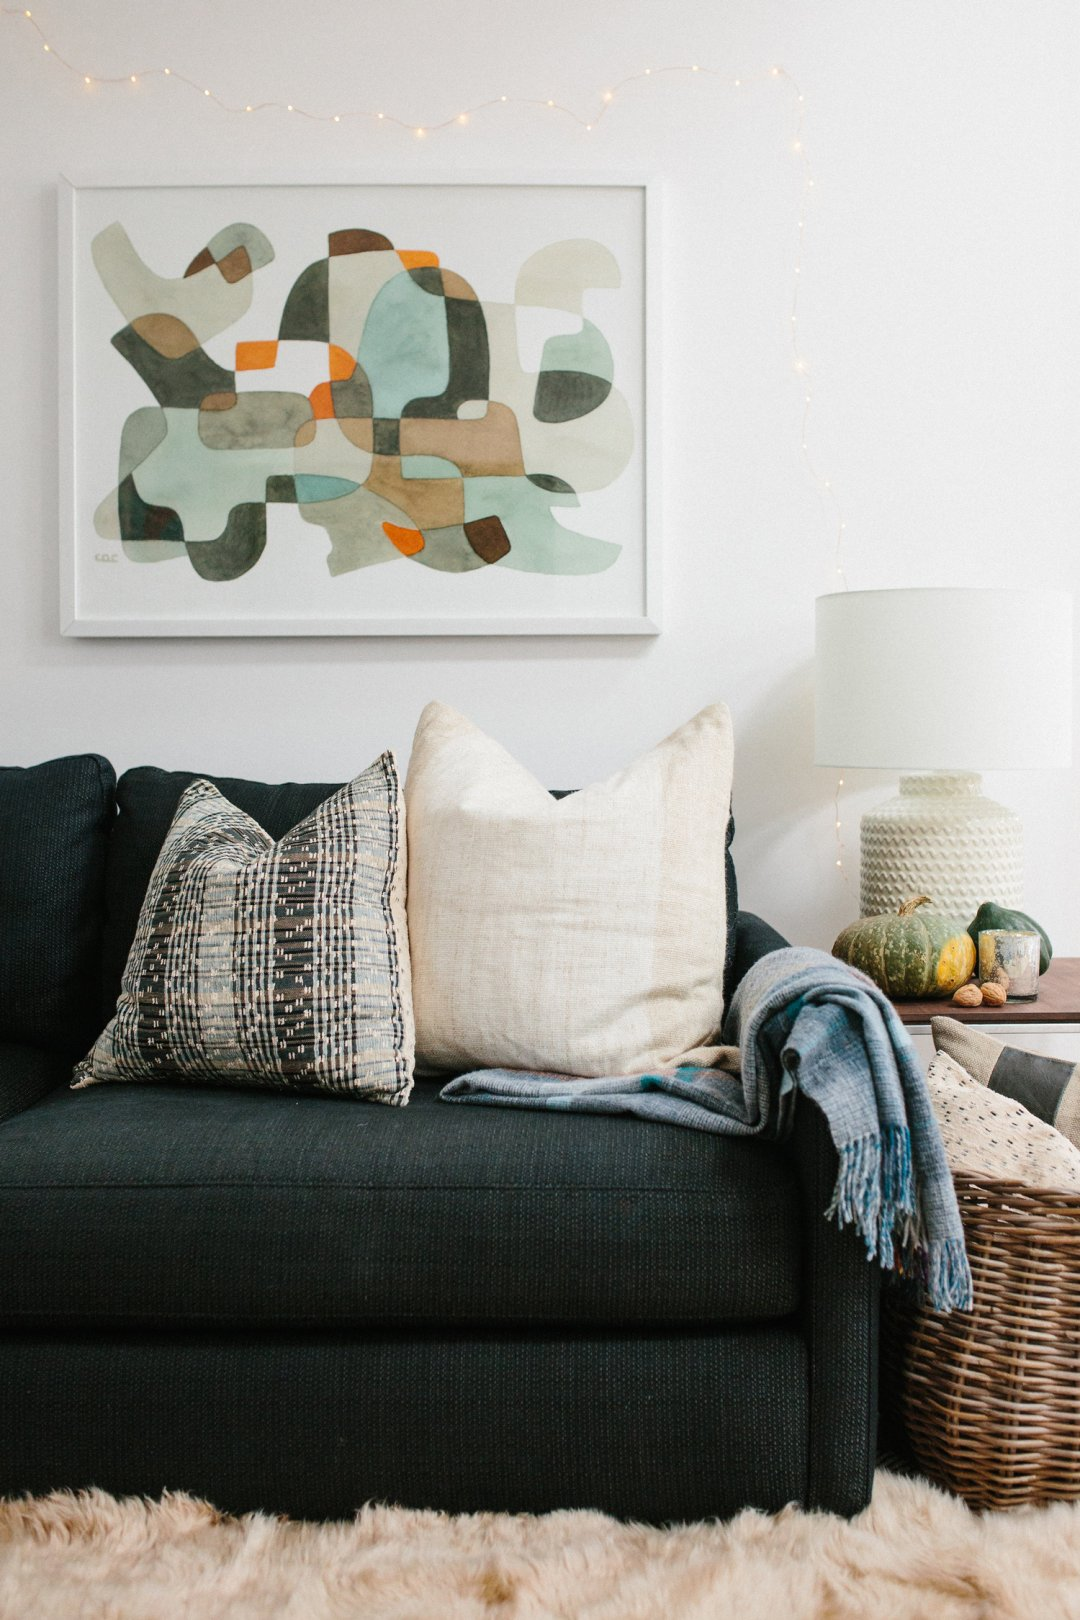 'Cozy living room decor and fluffy throw pillows on a fabric sofa in navy blue